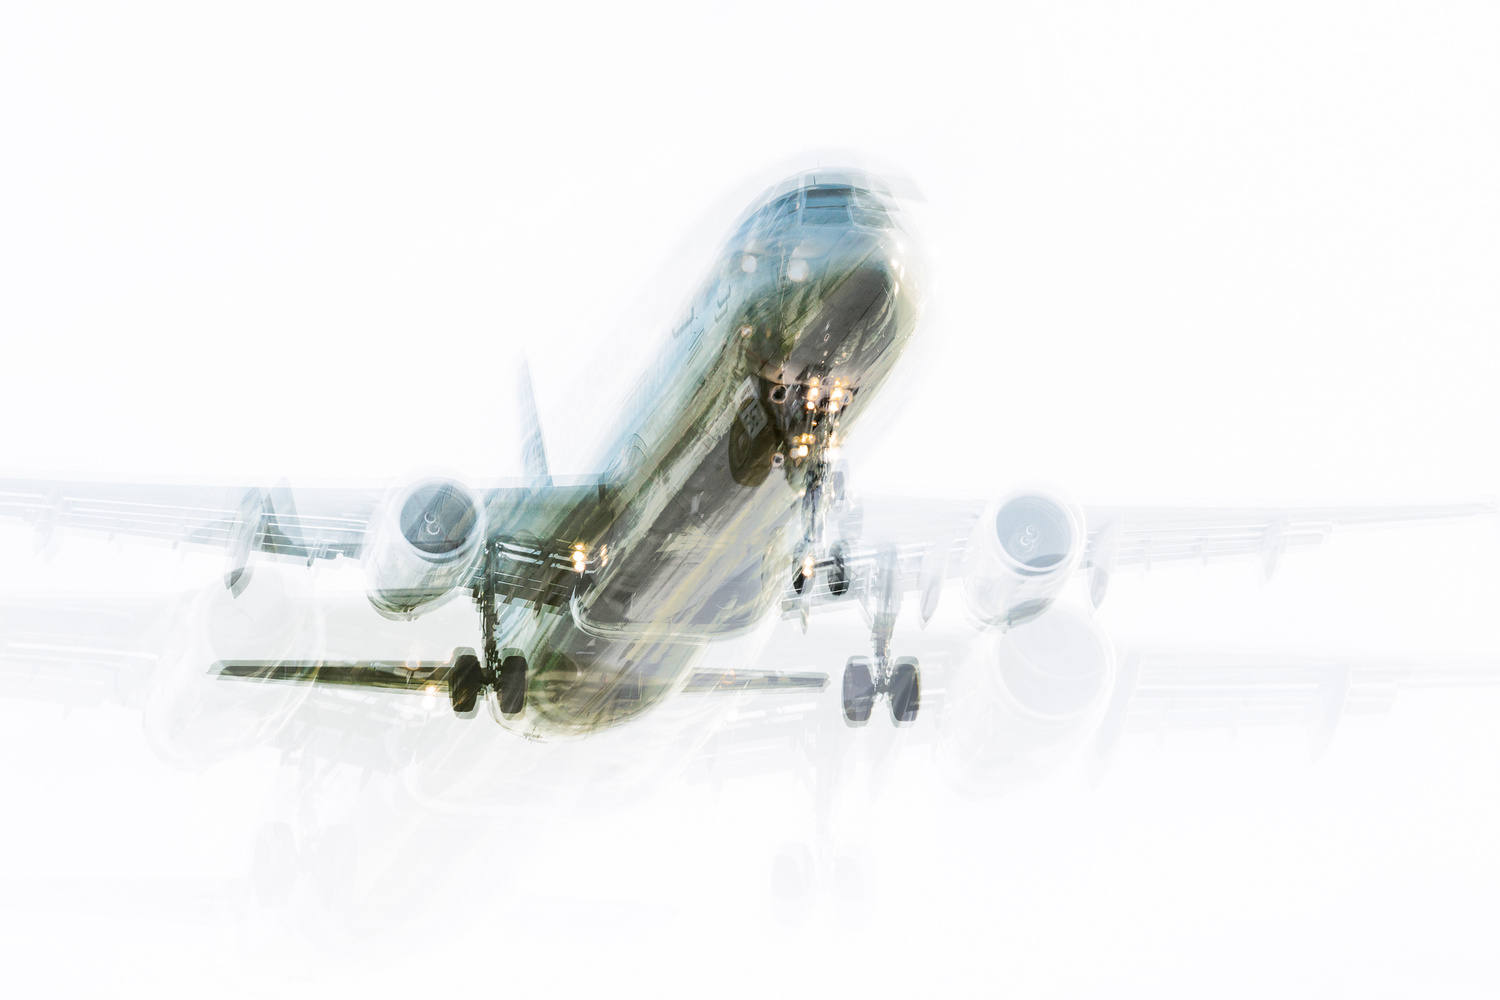 Abstract Jetliner 02 by Michael Oster